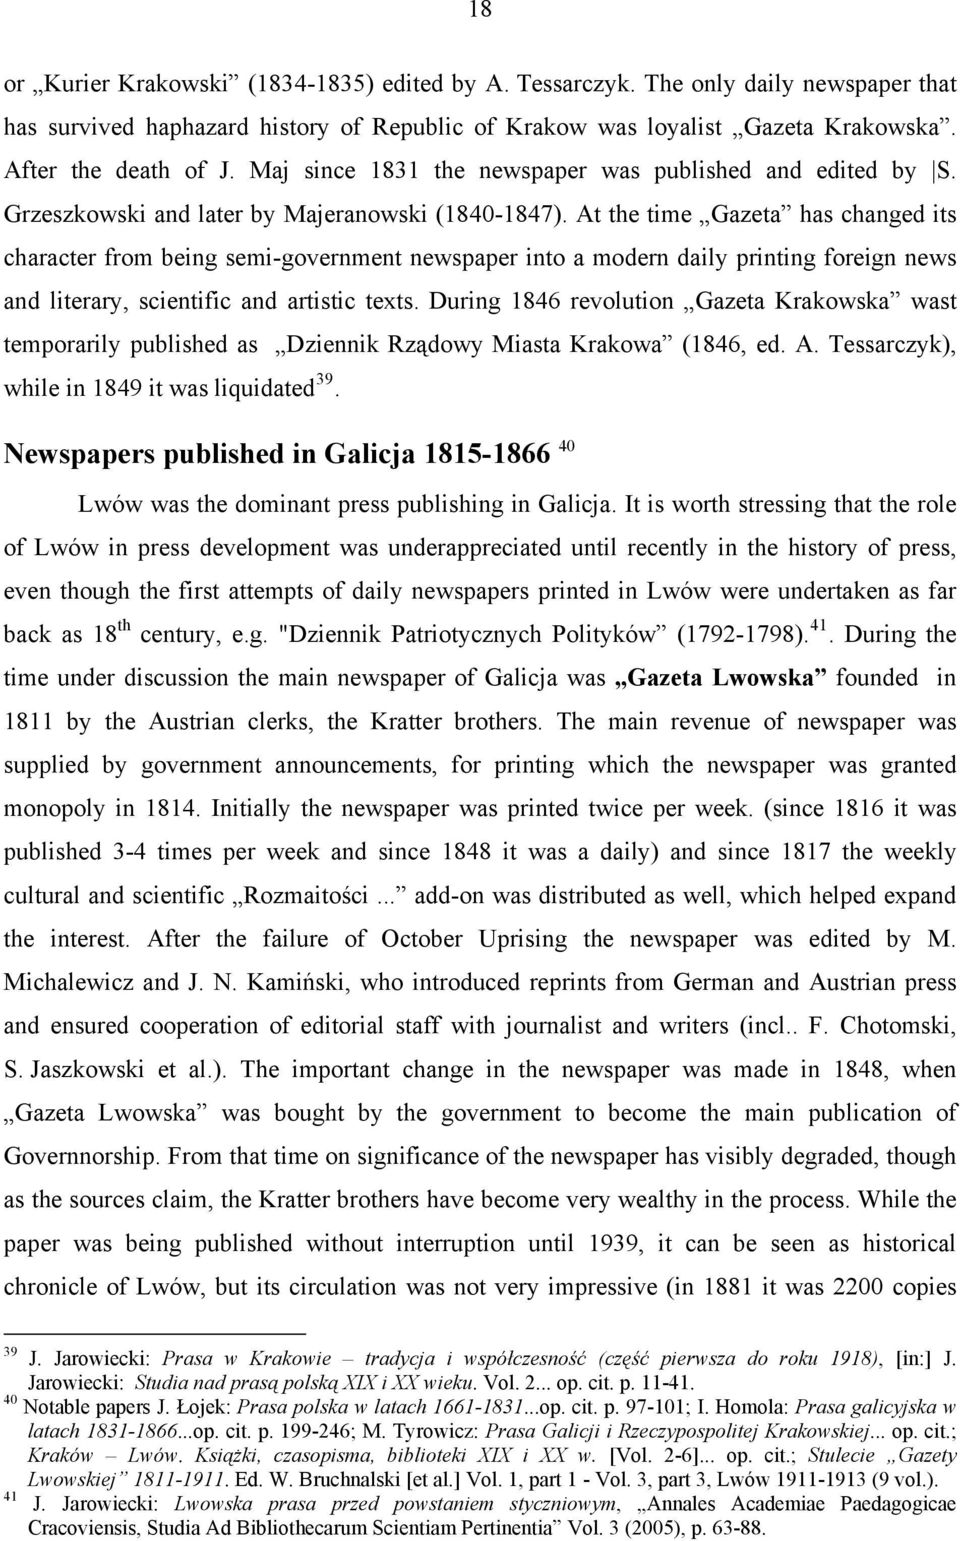 At the time Gazeta has changed its character from being semi-government newspaper into a modern daily printing foreign news and literary, scientific and artistic texts.